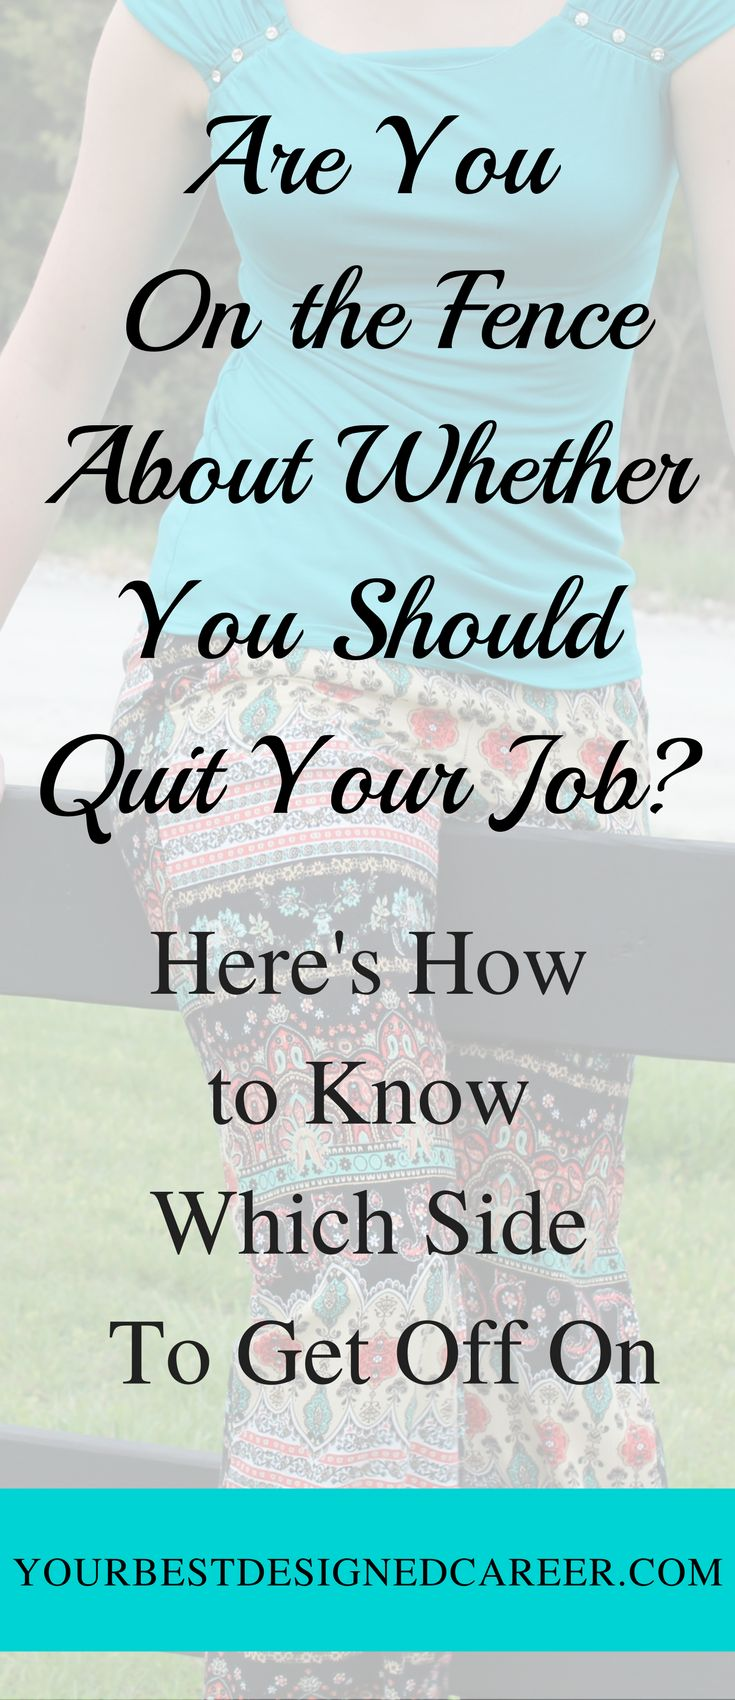 best ideas about quit job job quotes quitting are you on the fence about whether you should quit your job here s how to know which side to get off on